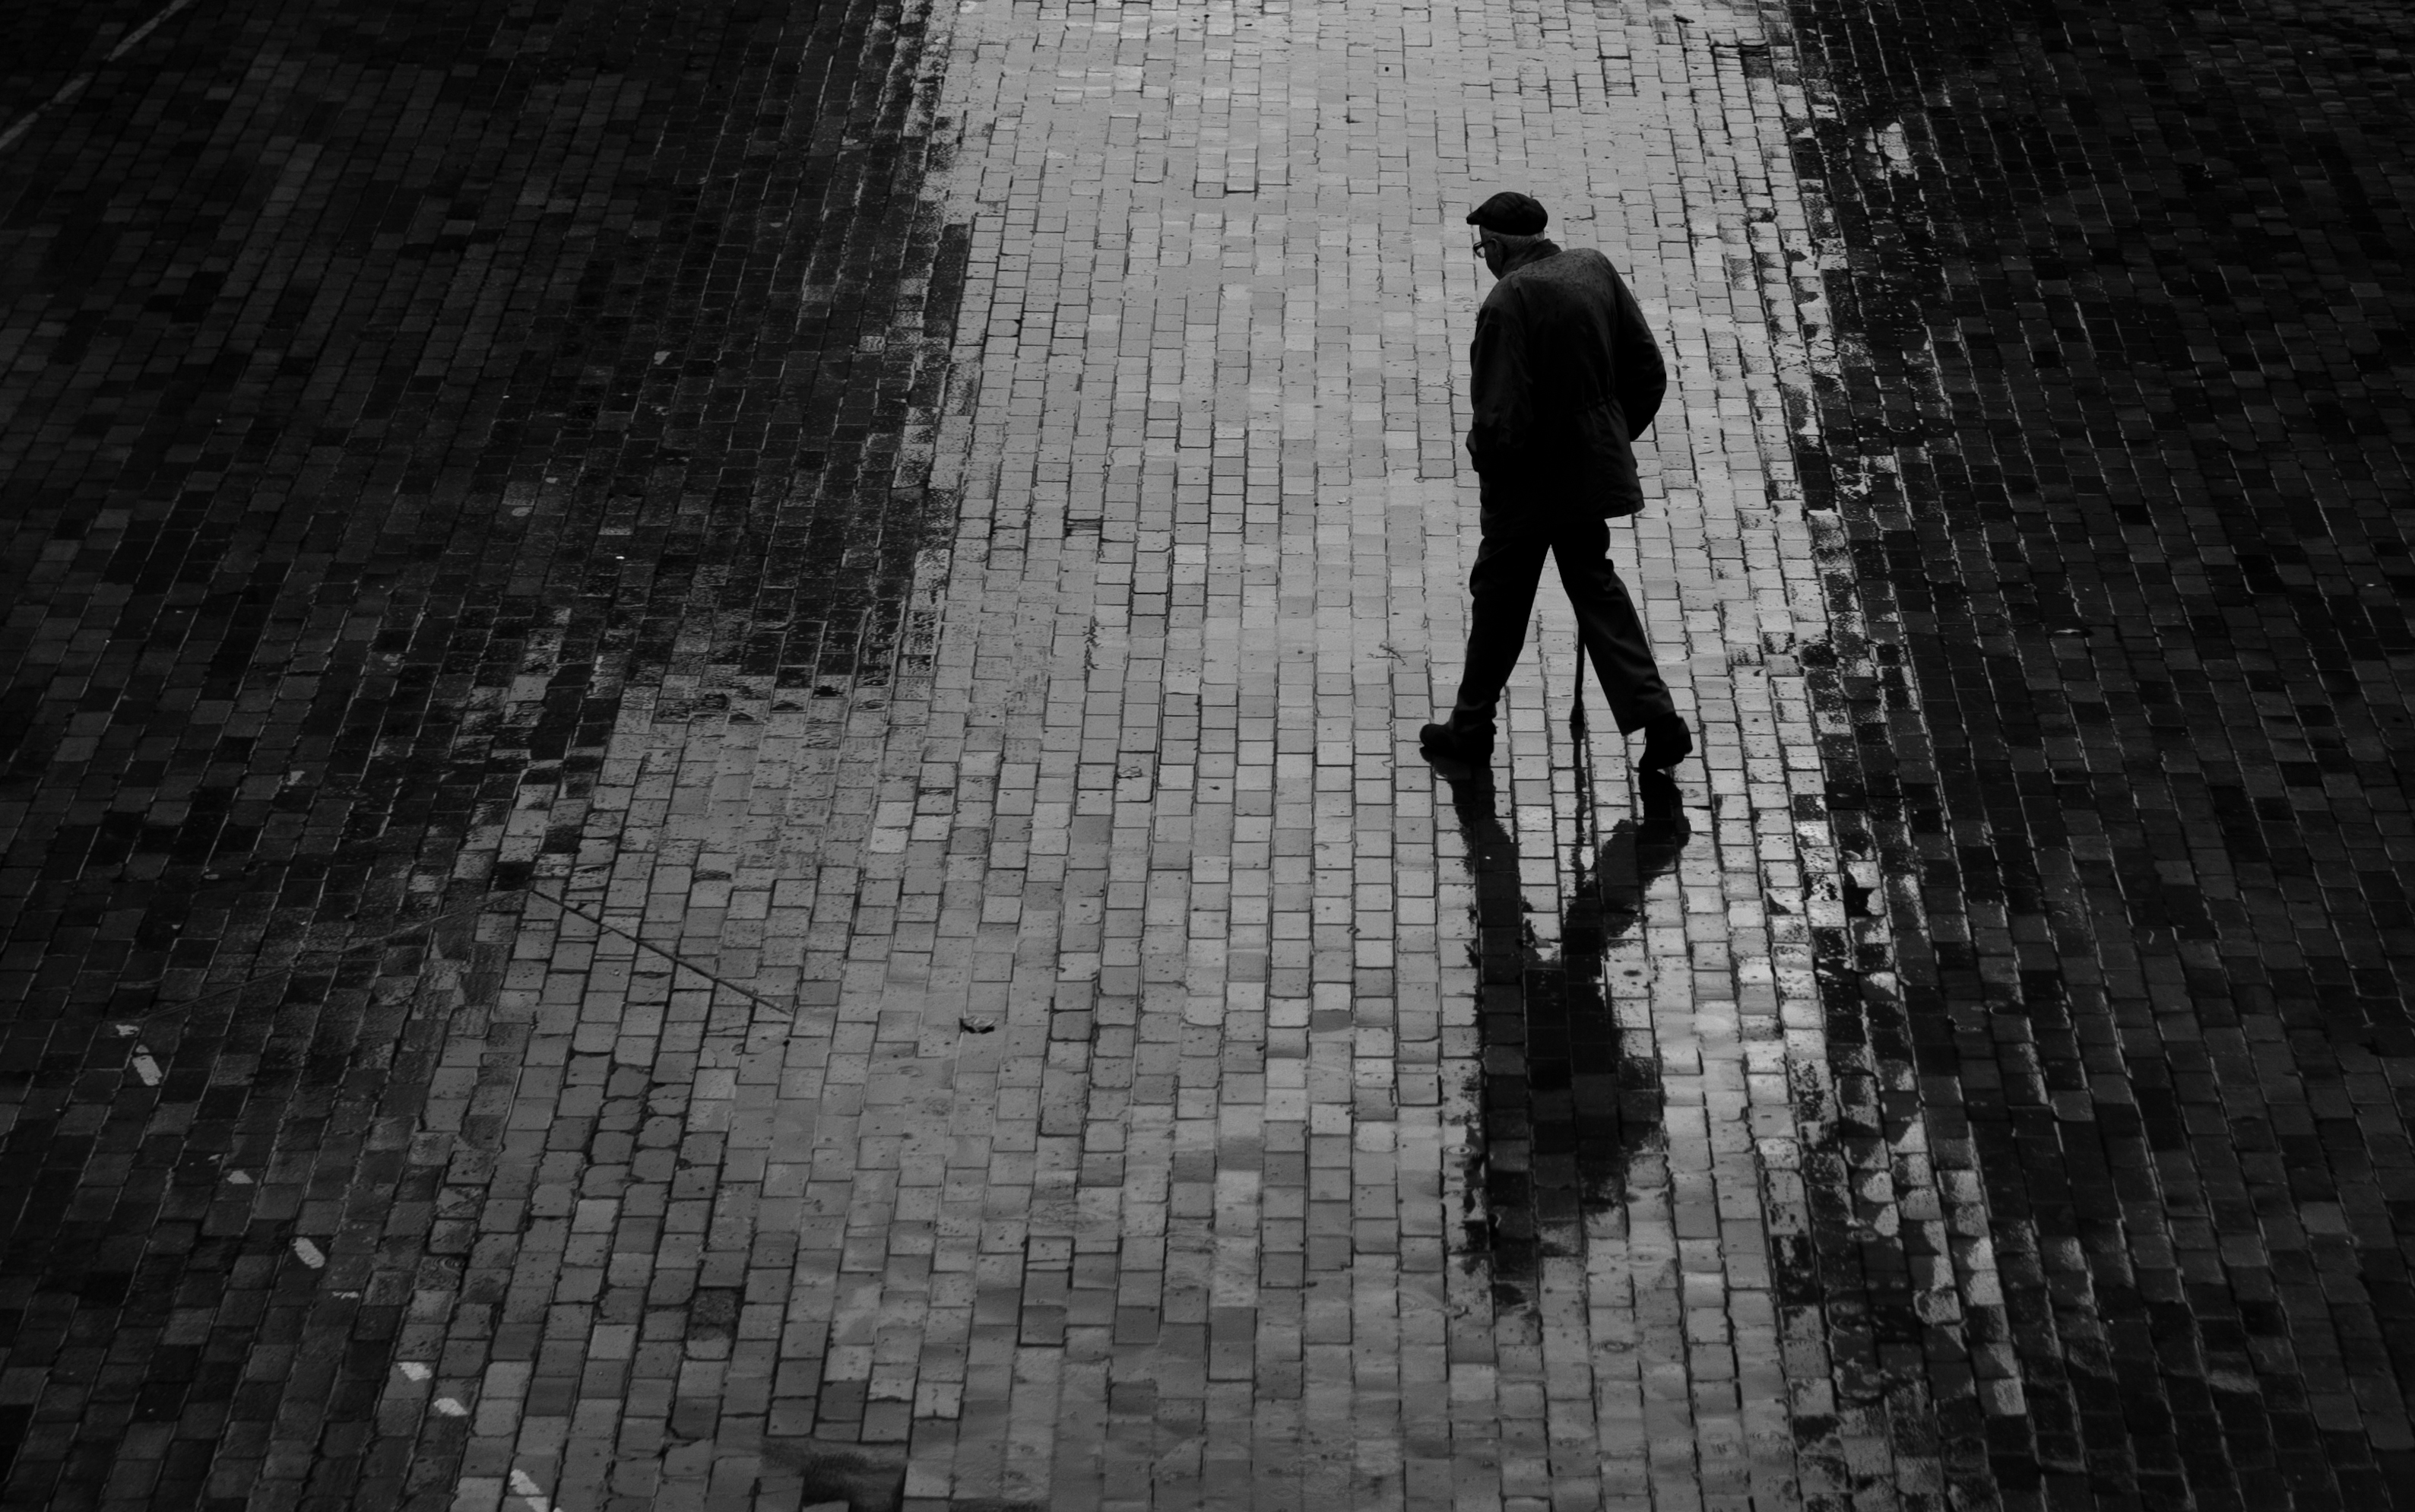 Man Walking In The Rain Pictures to Pin on Pinterest ...